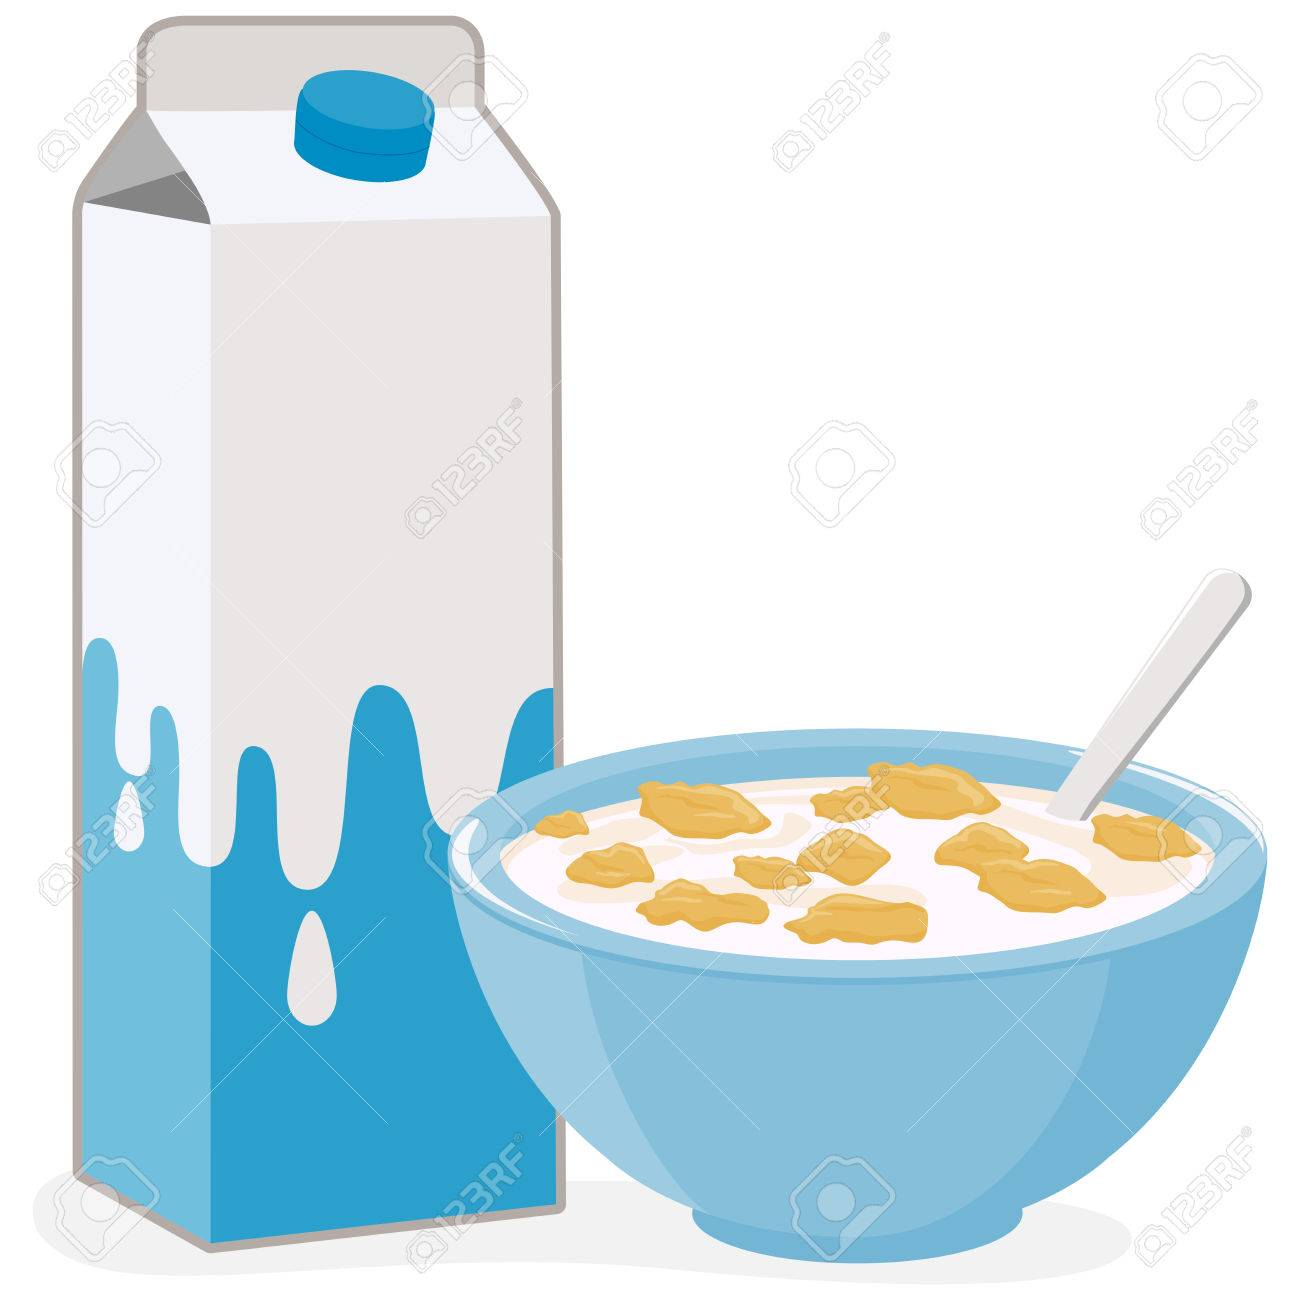 Vector illustration of a bowl of corn flakes cereal and a carton of milk. - 48589775